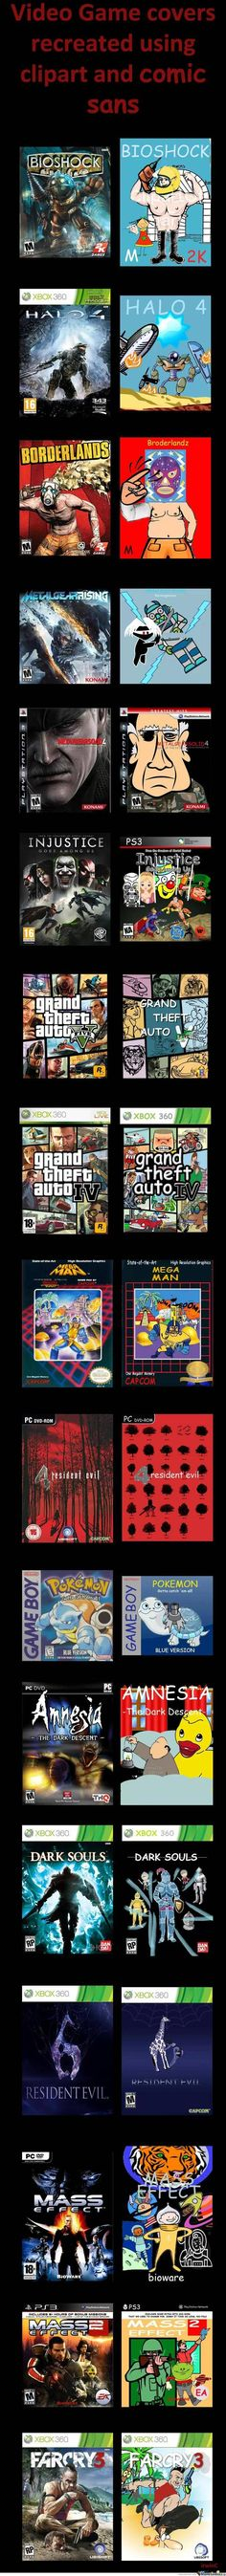 Video Game covers recreated using clipart via Reddit user ItsChadReddit